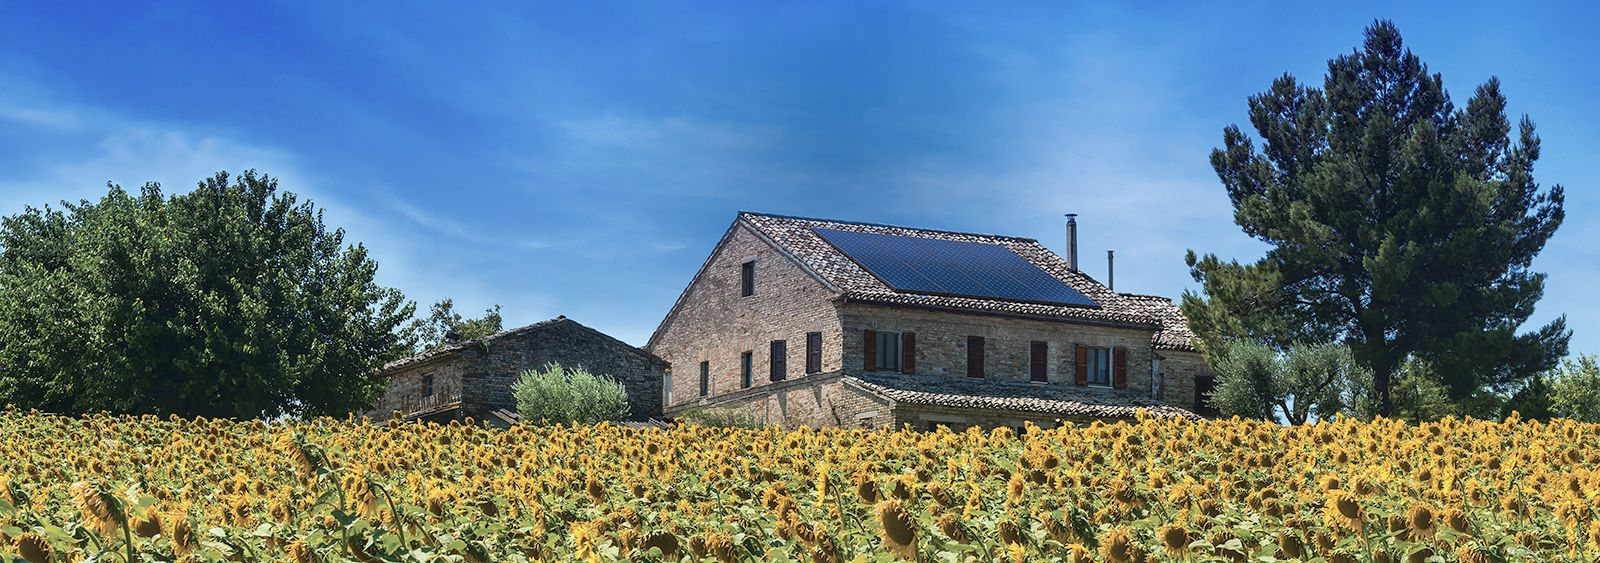 sustainability - home with solar panels in sunflower field